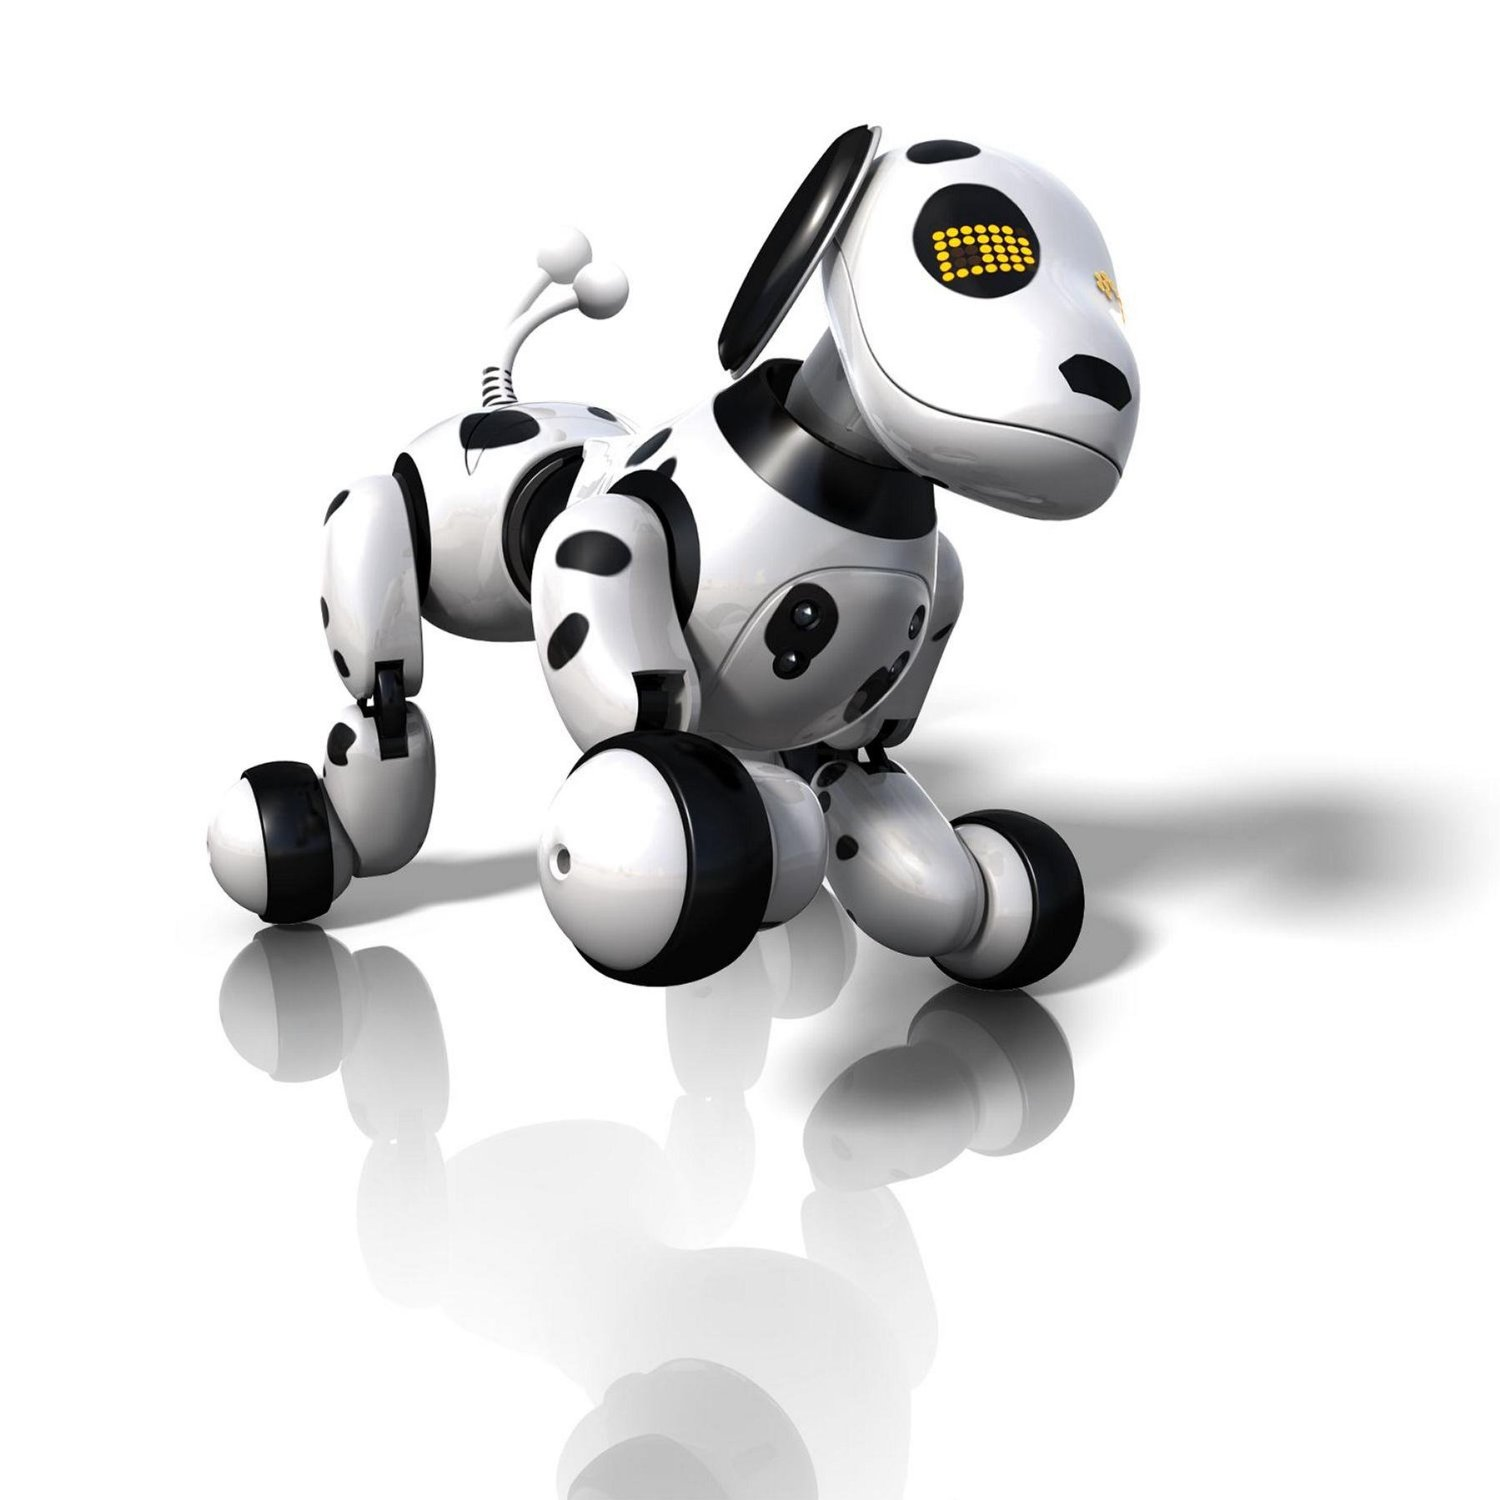 Toy For Ages Five To Seven : Zoomer the robot dog for kids christmas gifts everyone